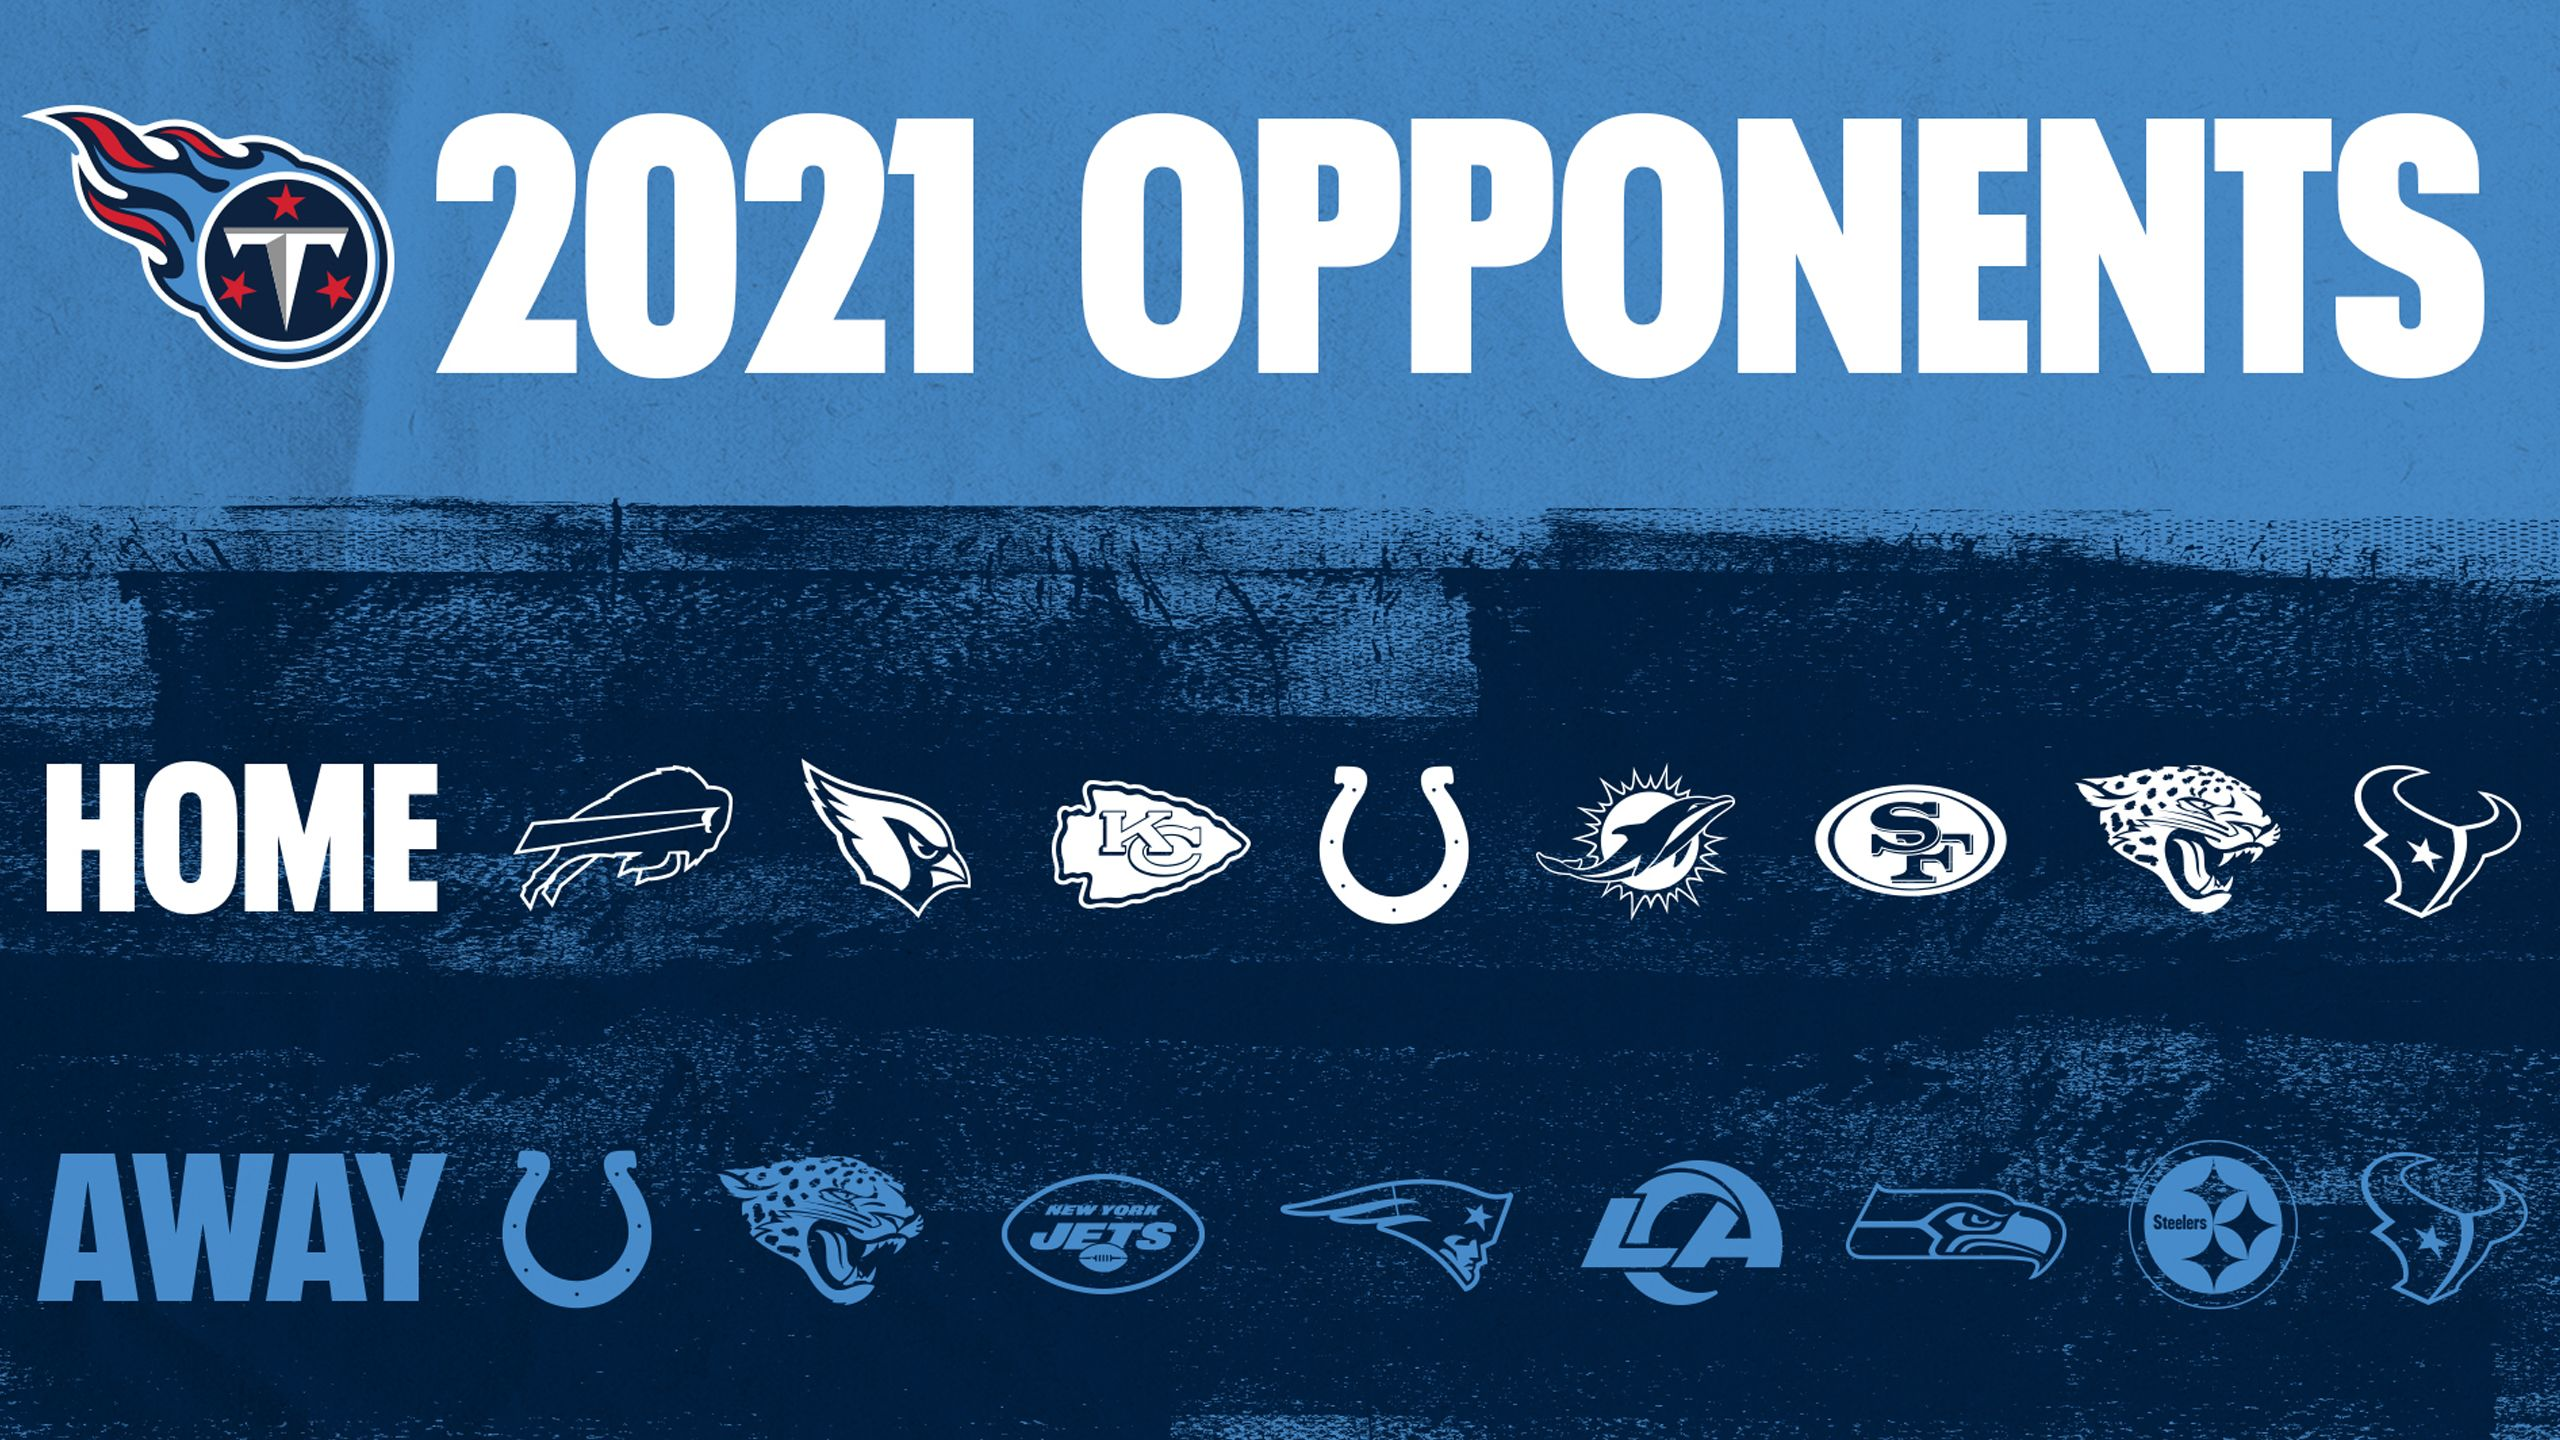 2021 OPPONENTS